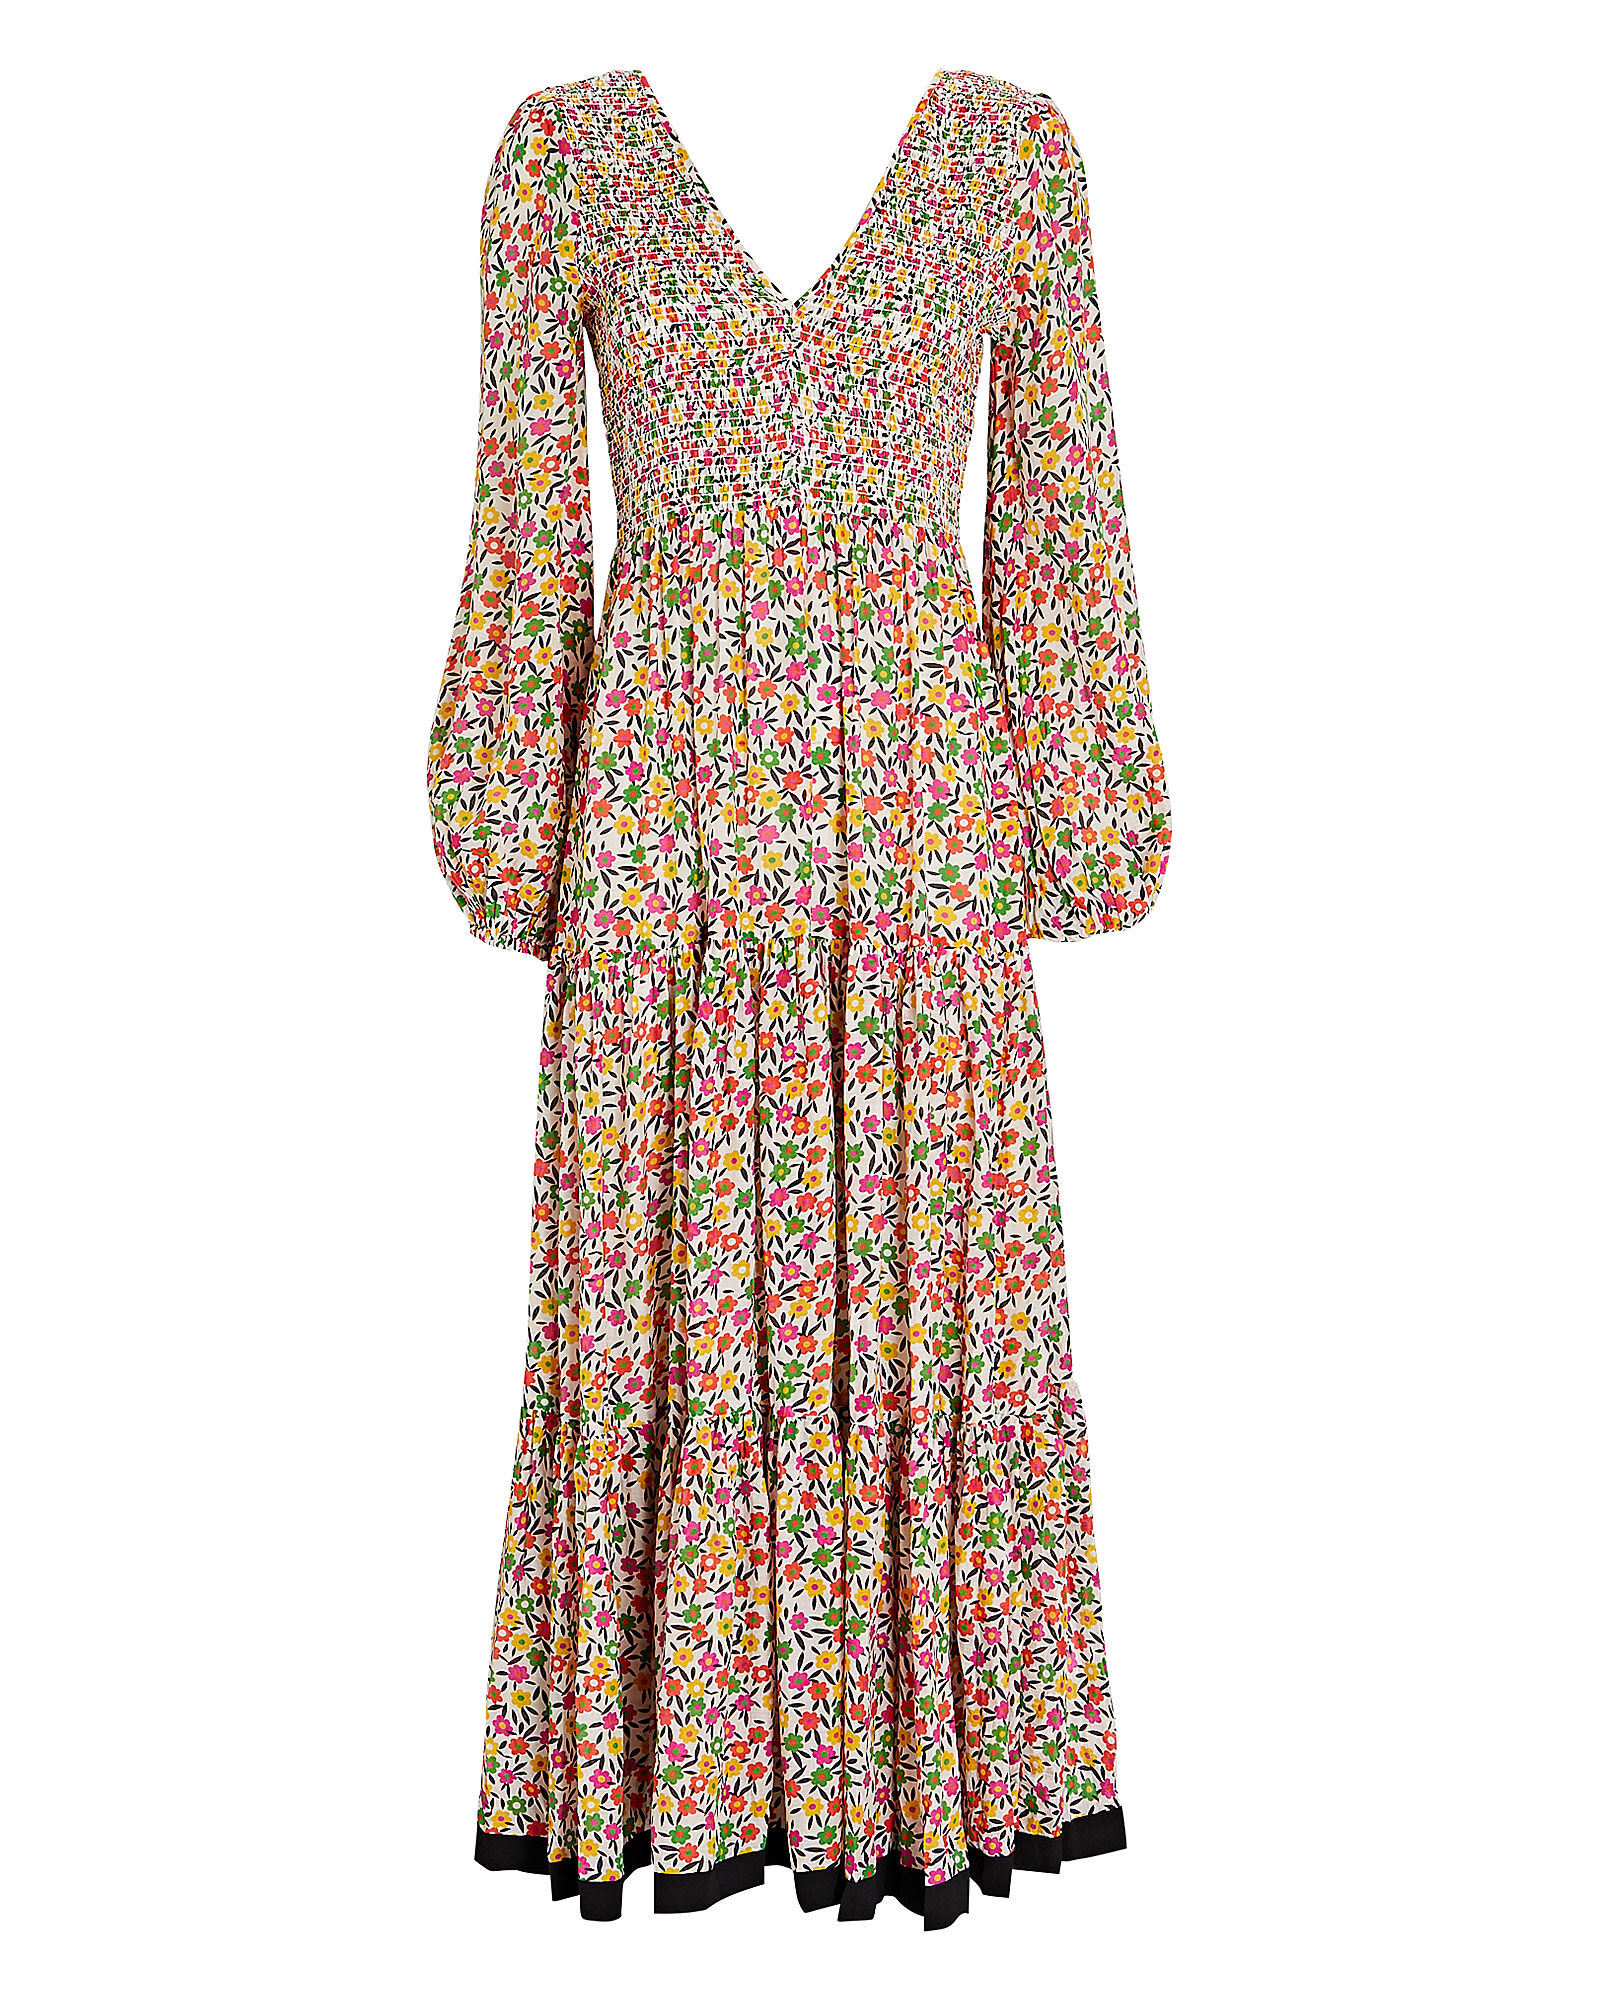 Brooke Micro Floral Midi Dress, MULTI, hi-res